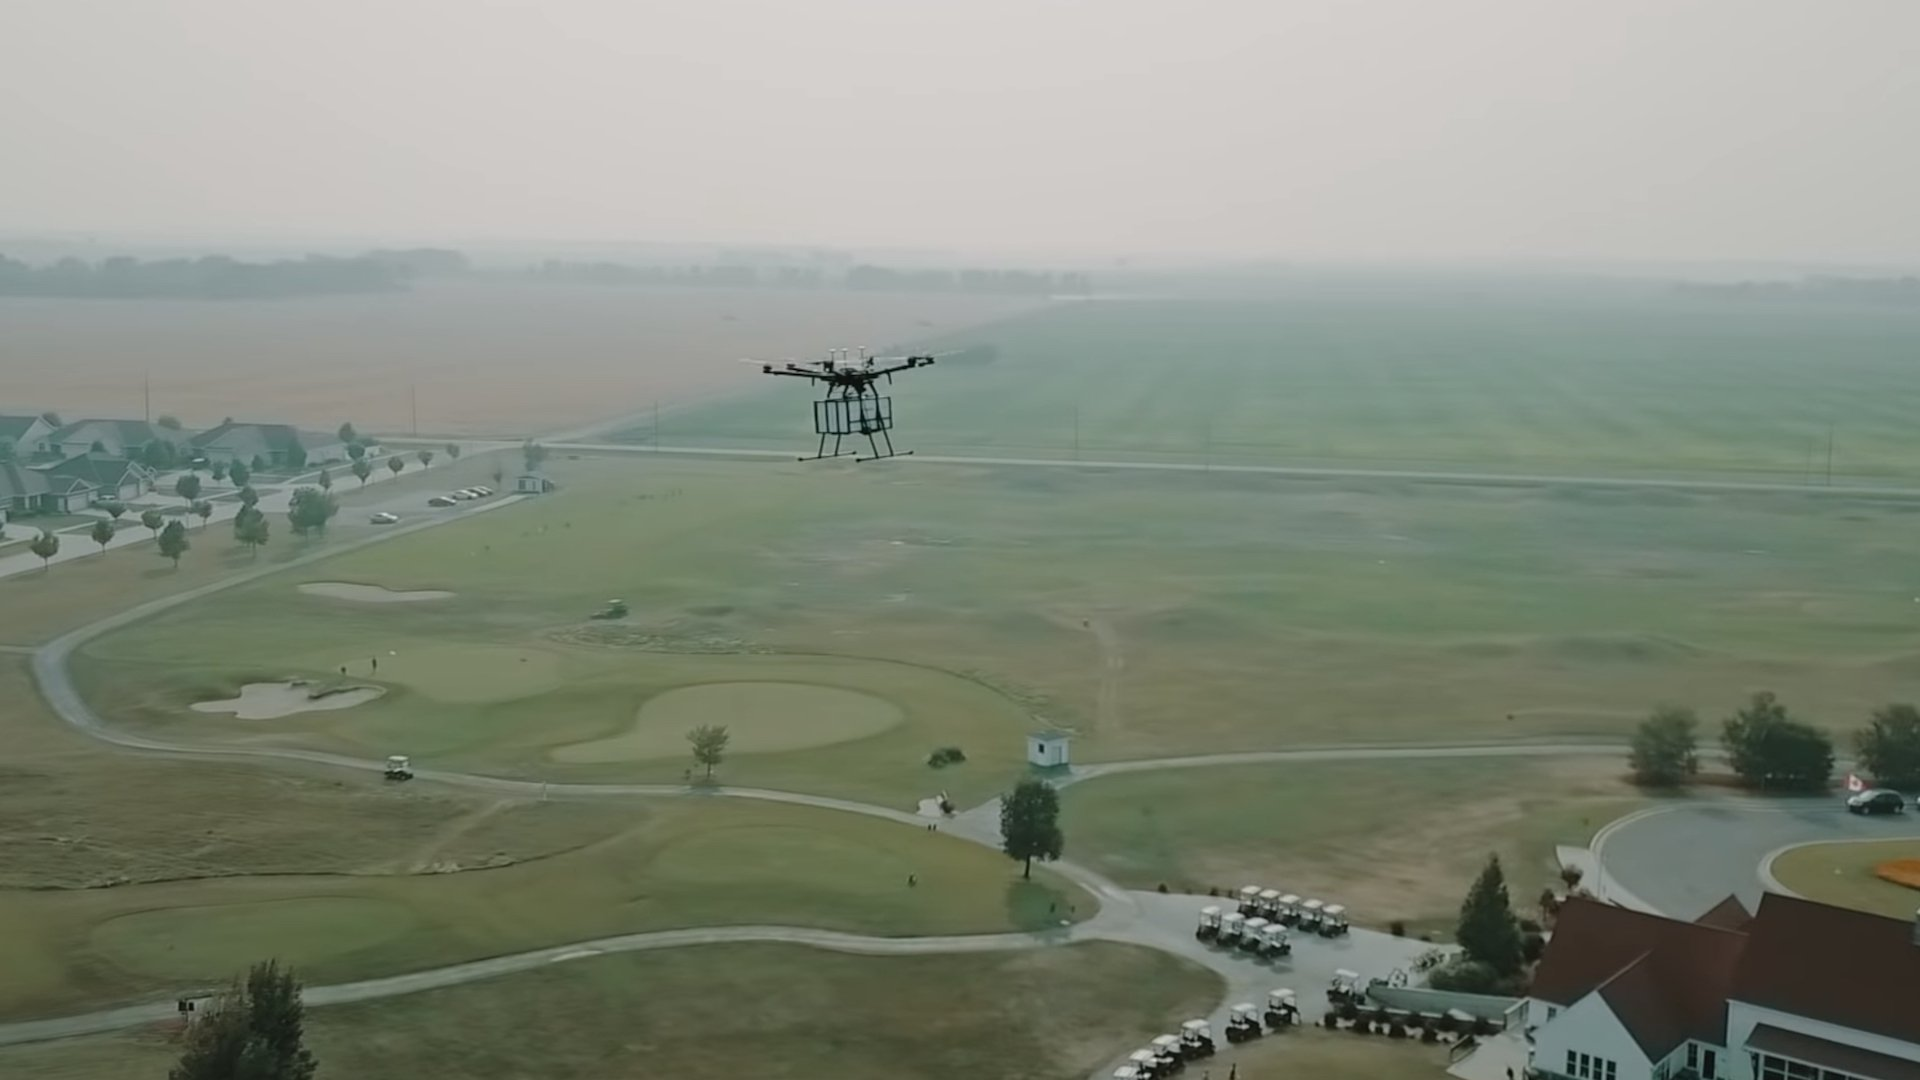 Flytrex Launches Aerial Food Delivery by Drone in North Dakota